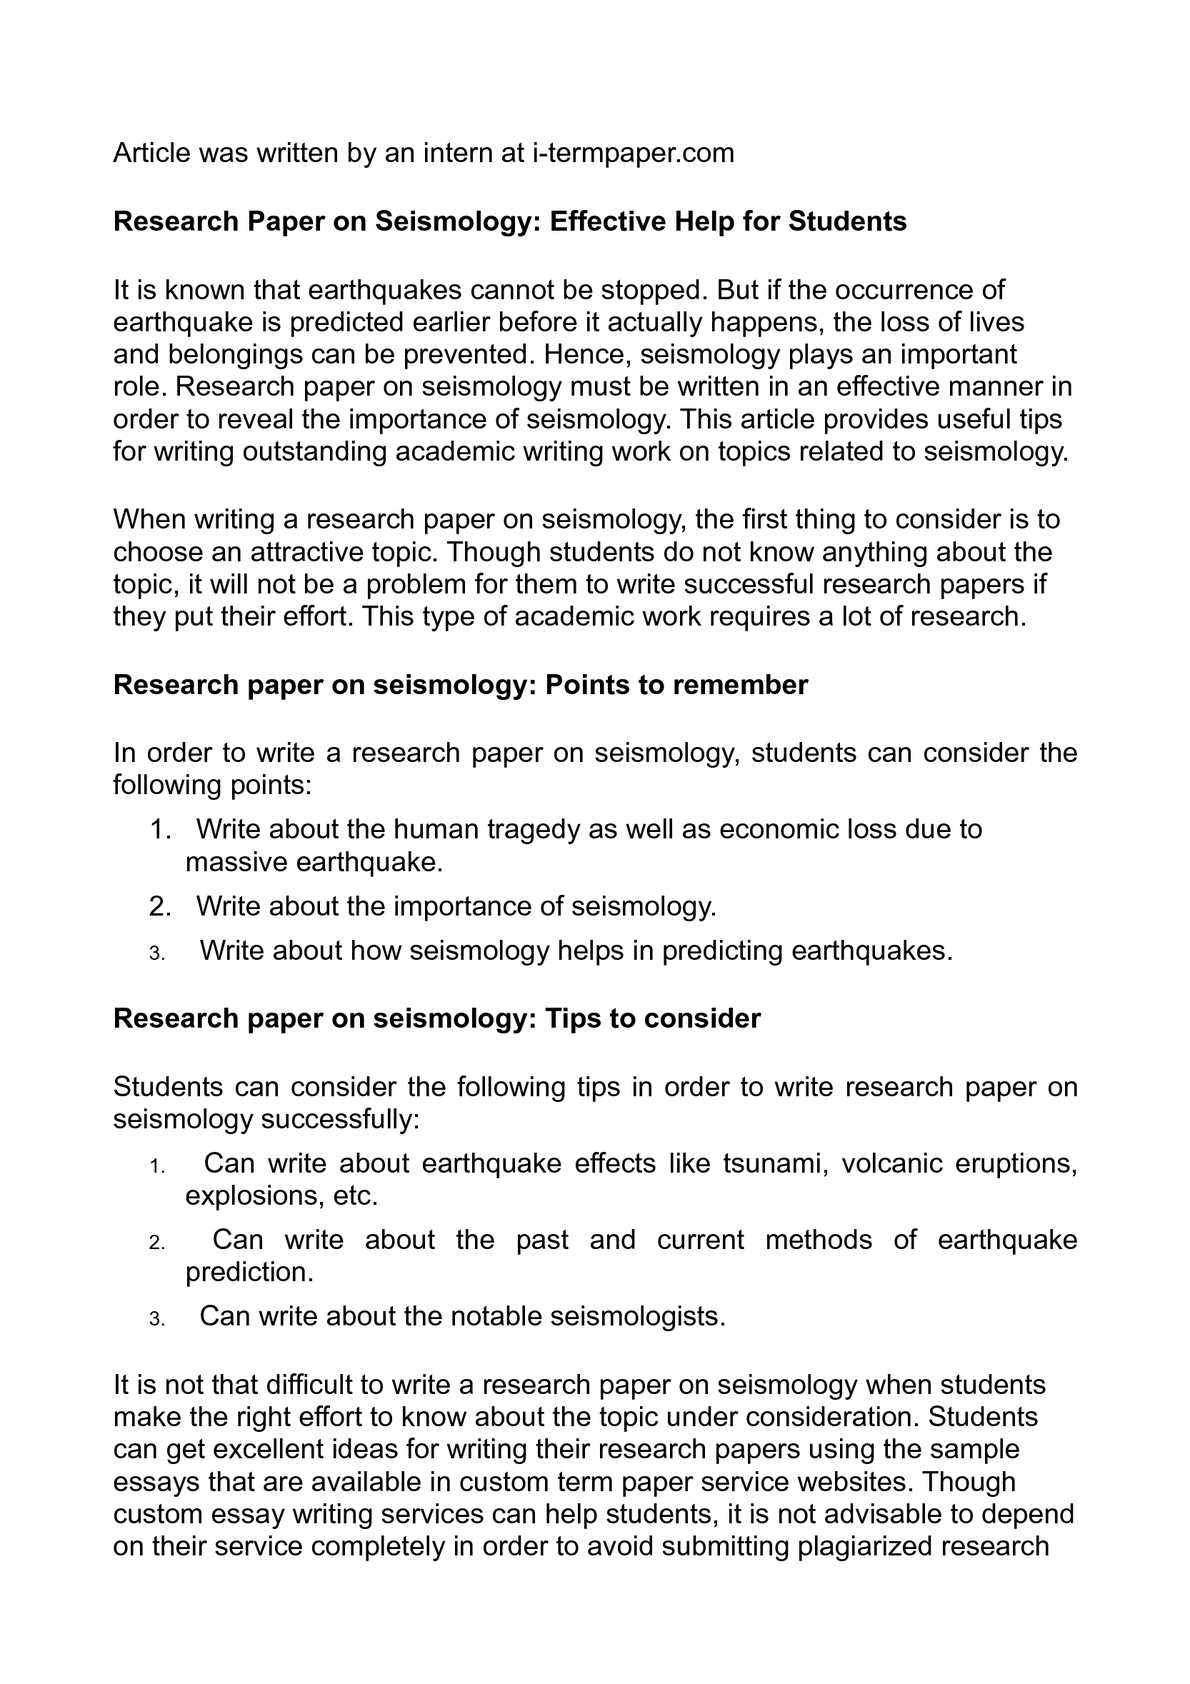 calaméo research paper on seismology effective help for students